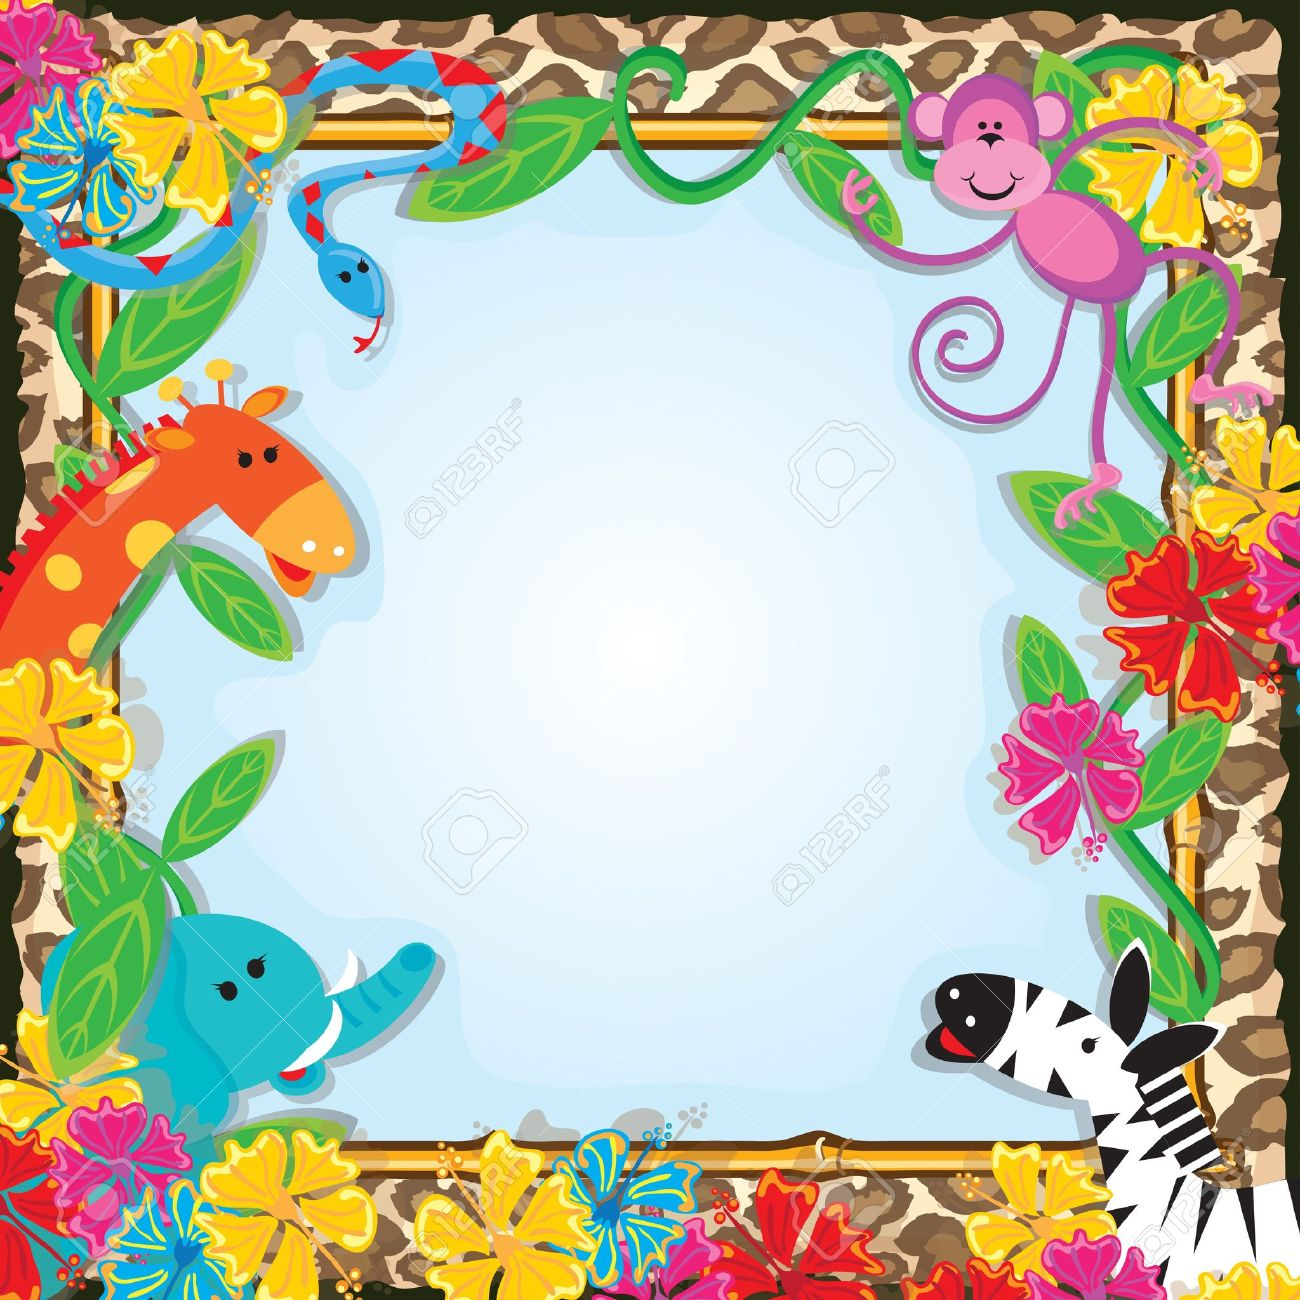 Jungle zoo party invitation bright and colorful jungle animals jungle zoo party invitation bright and colorful jungle animals welcome you to a party stock vector stopboris